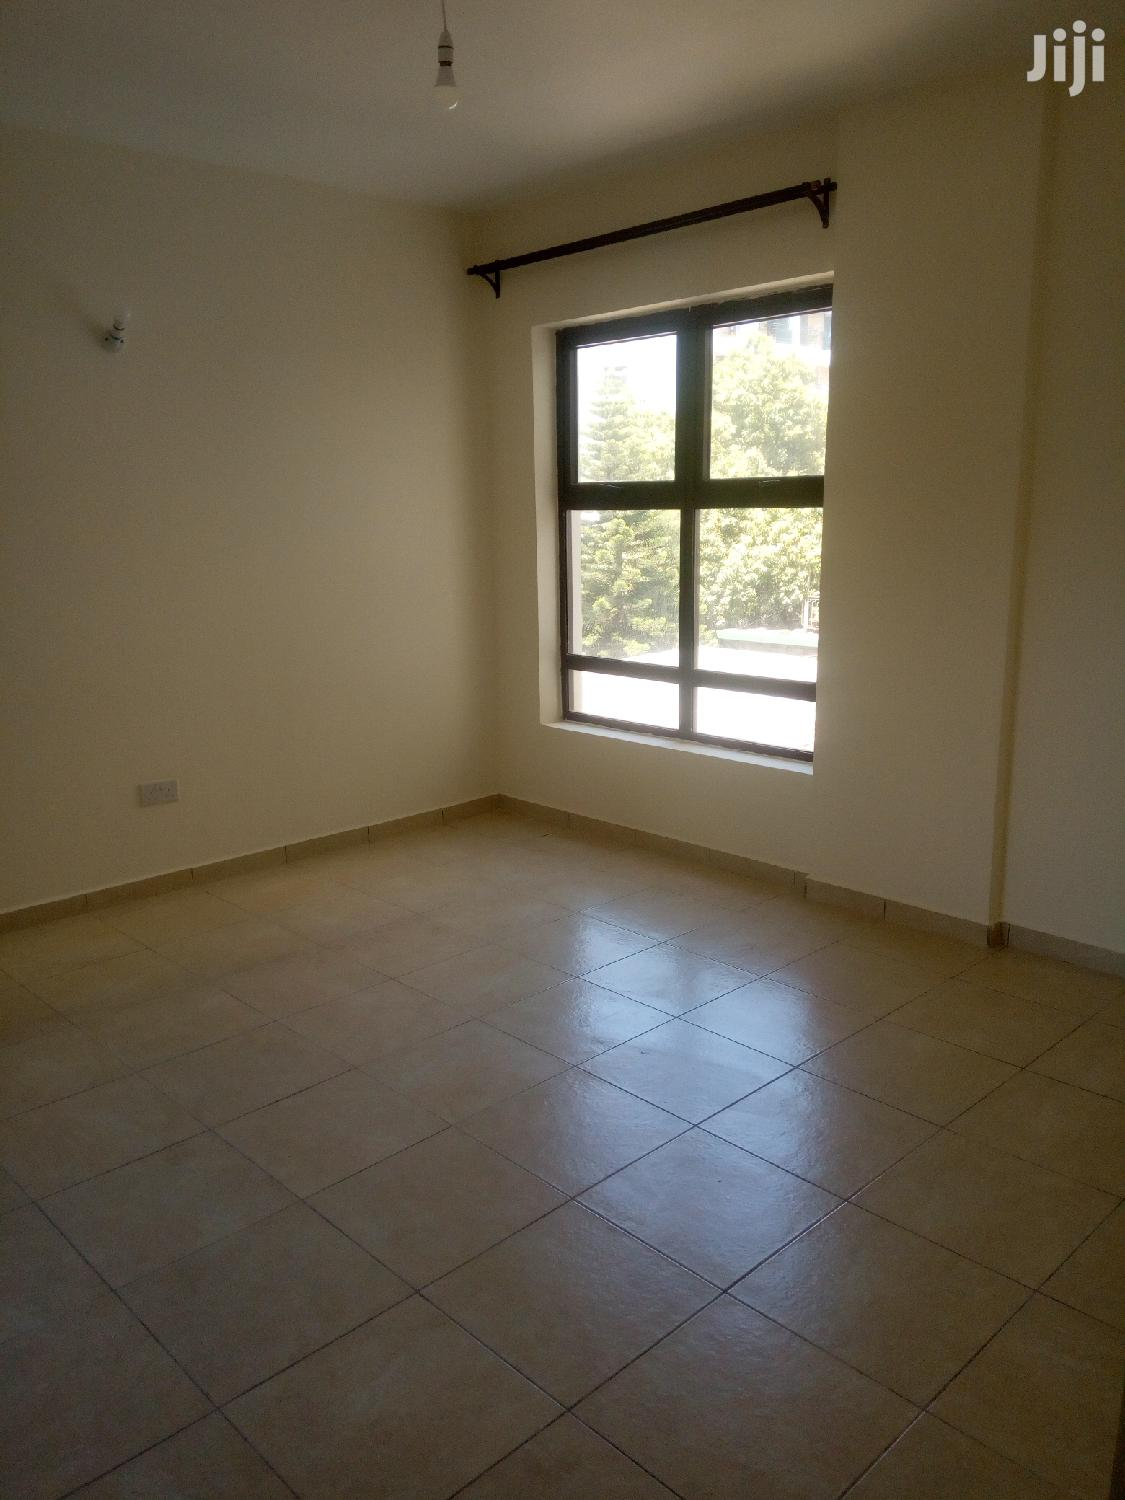 Modern One Bedroomed to Let in South C | Houses & Apartments For Rent for sale in South C, Nairobi, Kenya